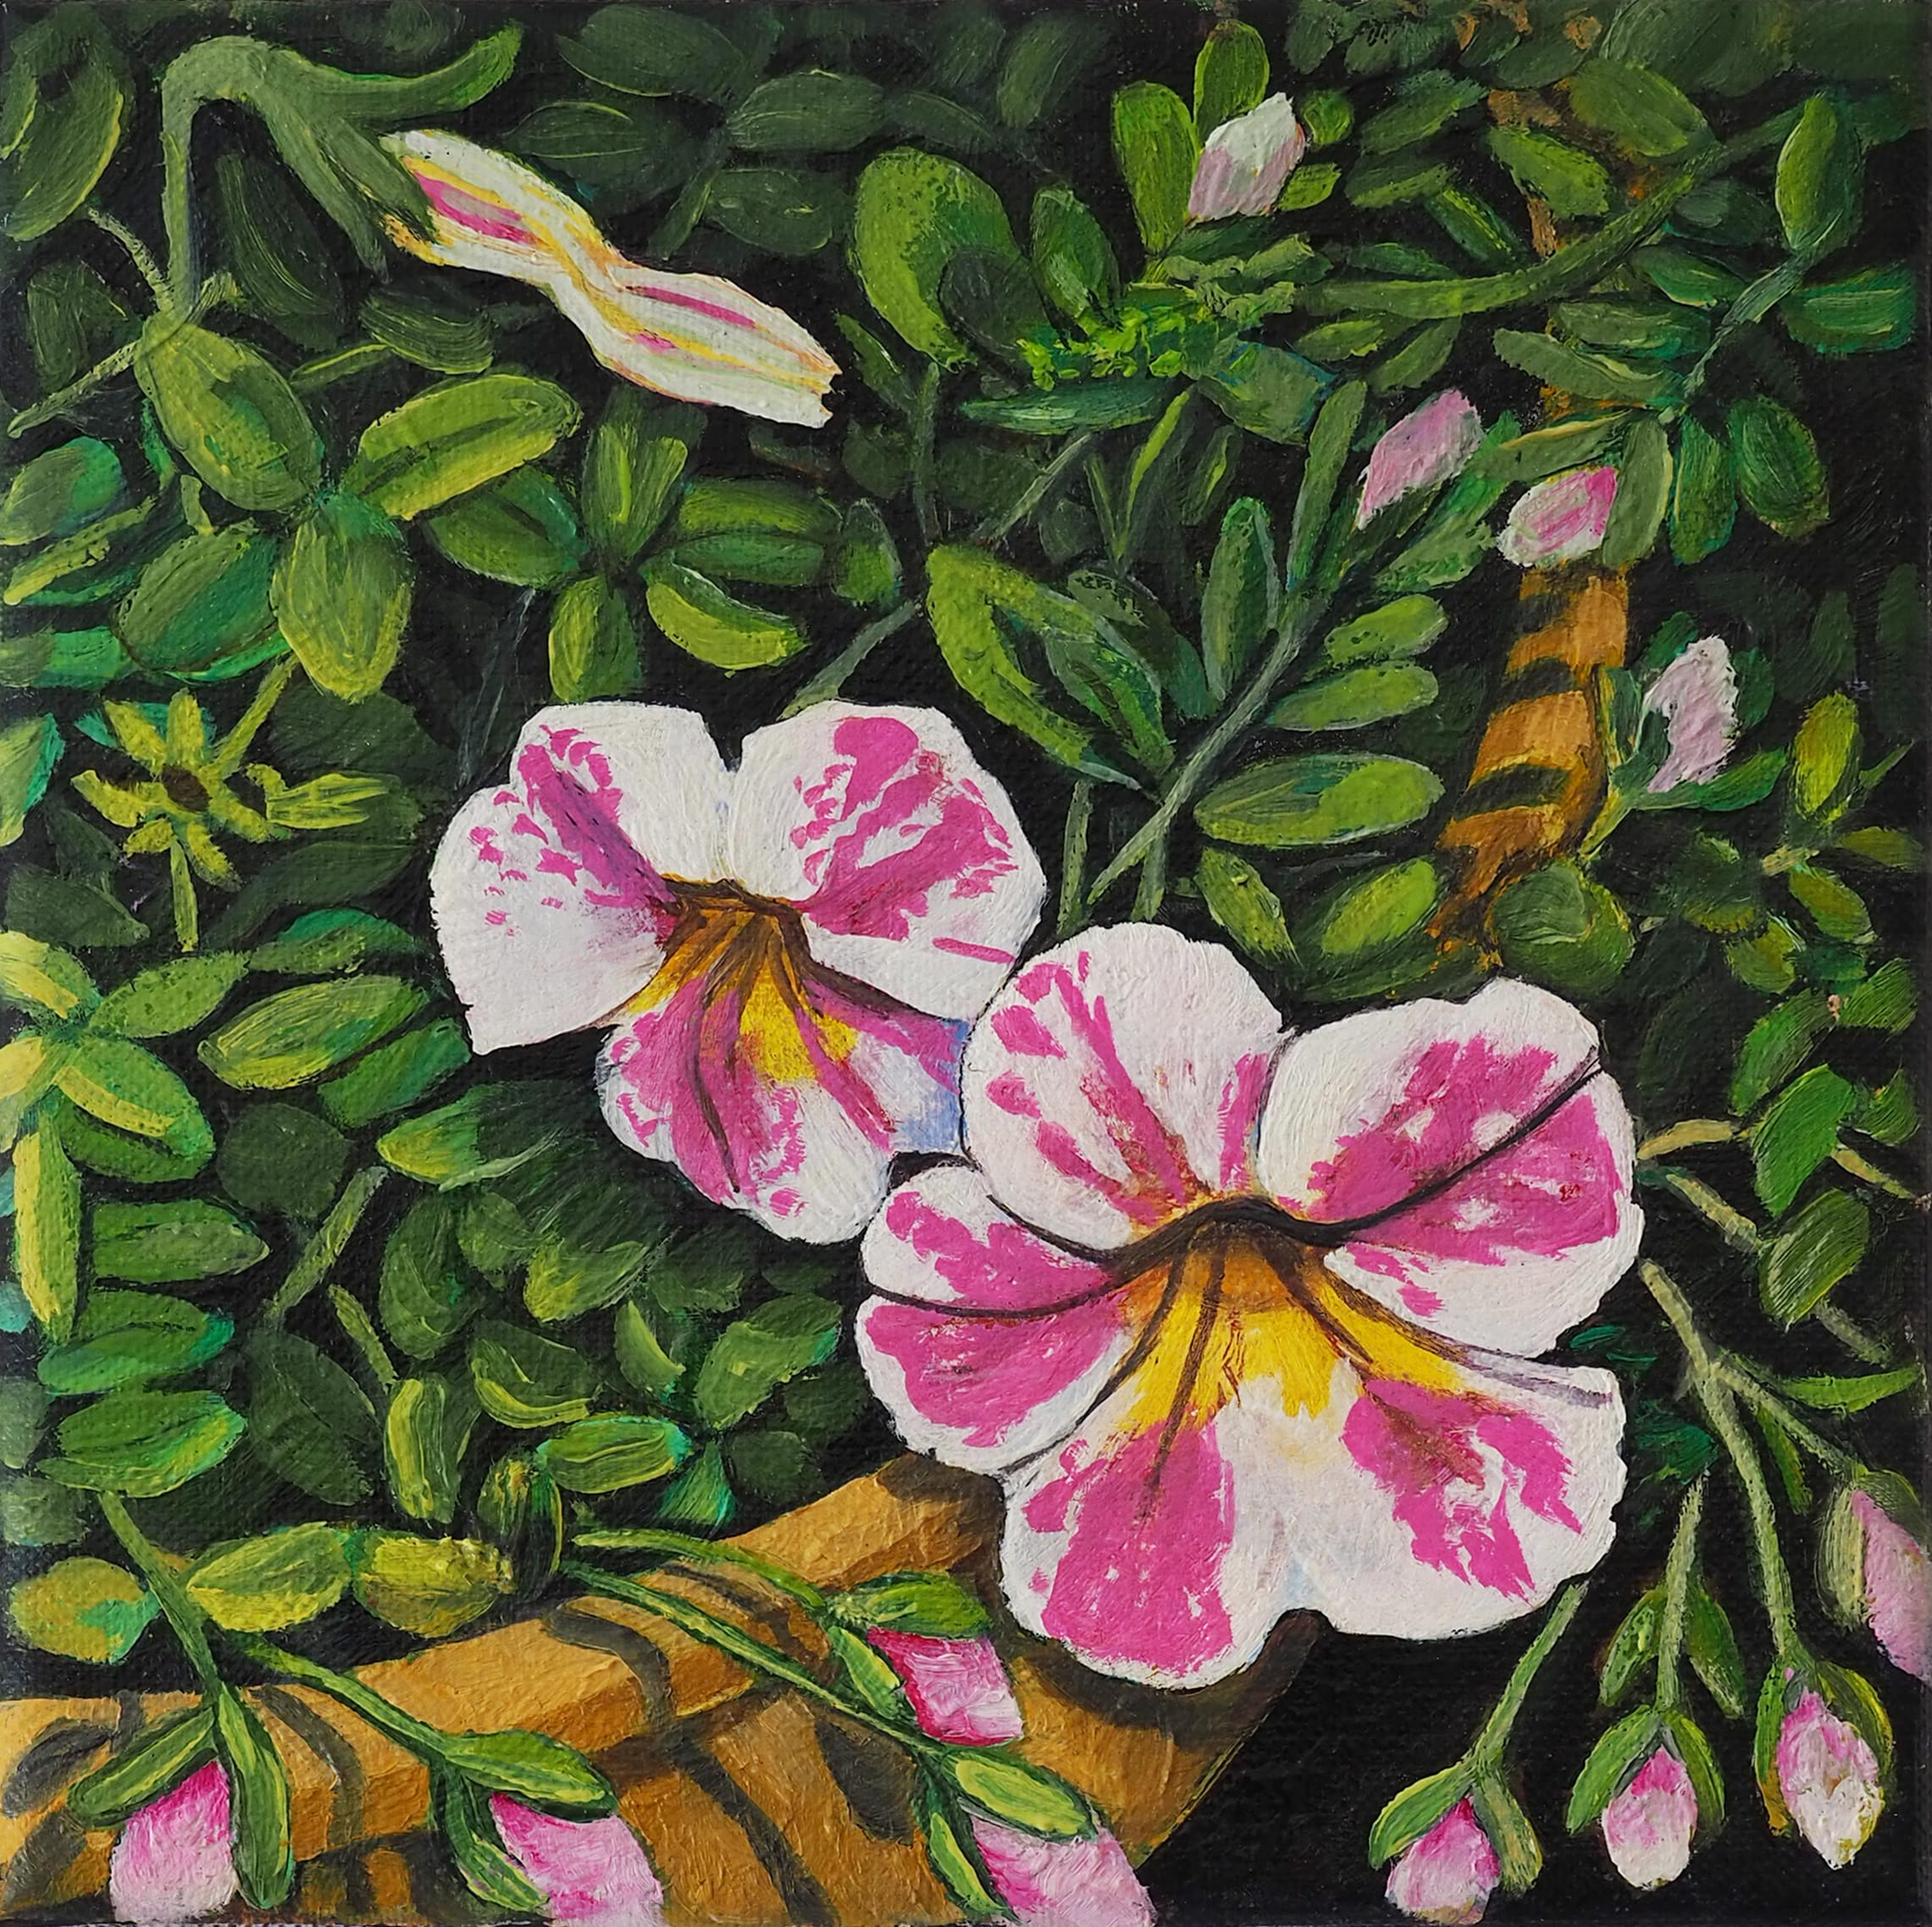 Potted Petunias 20x20cm oil on canvas $250 SOLD